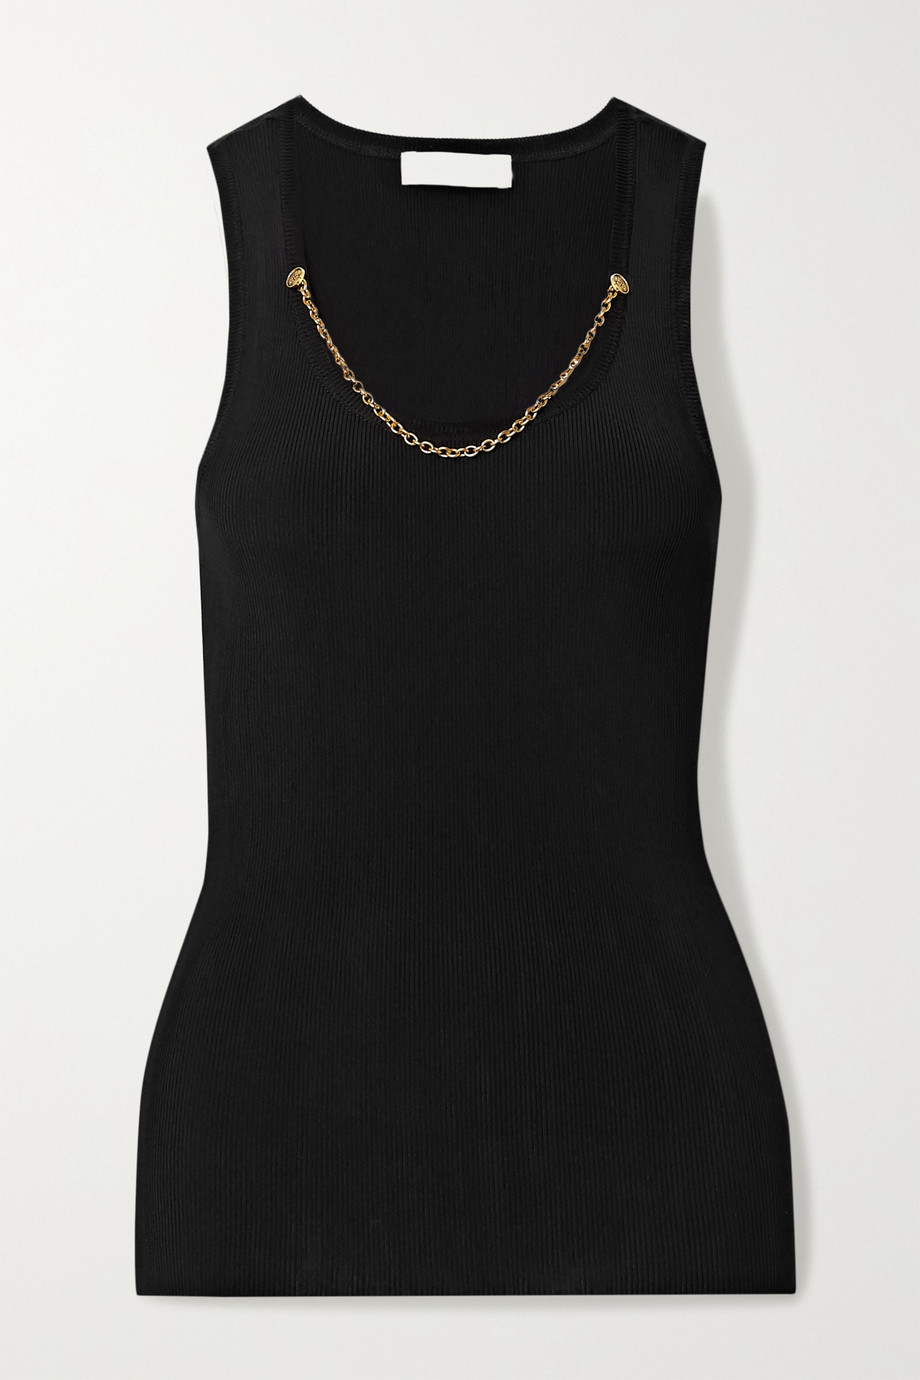 Givenchy Chain-embellished ribbed jersey tank